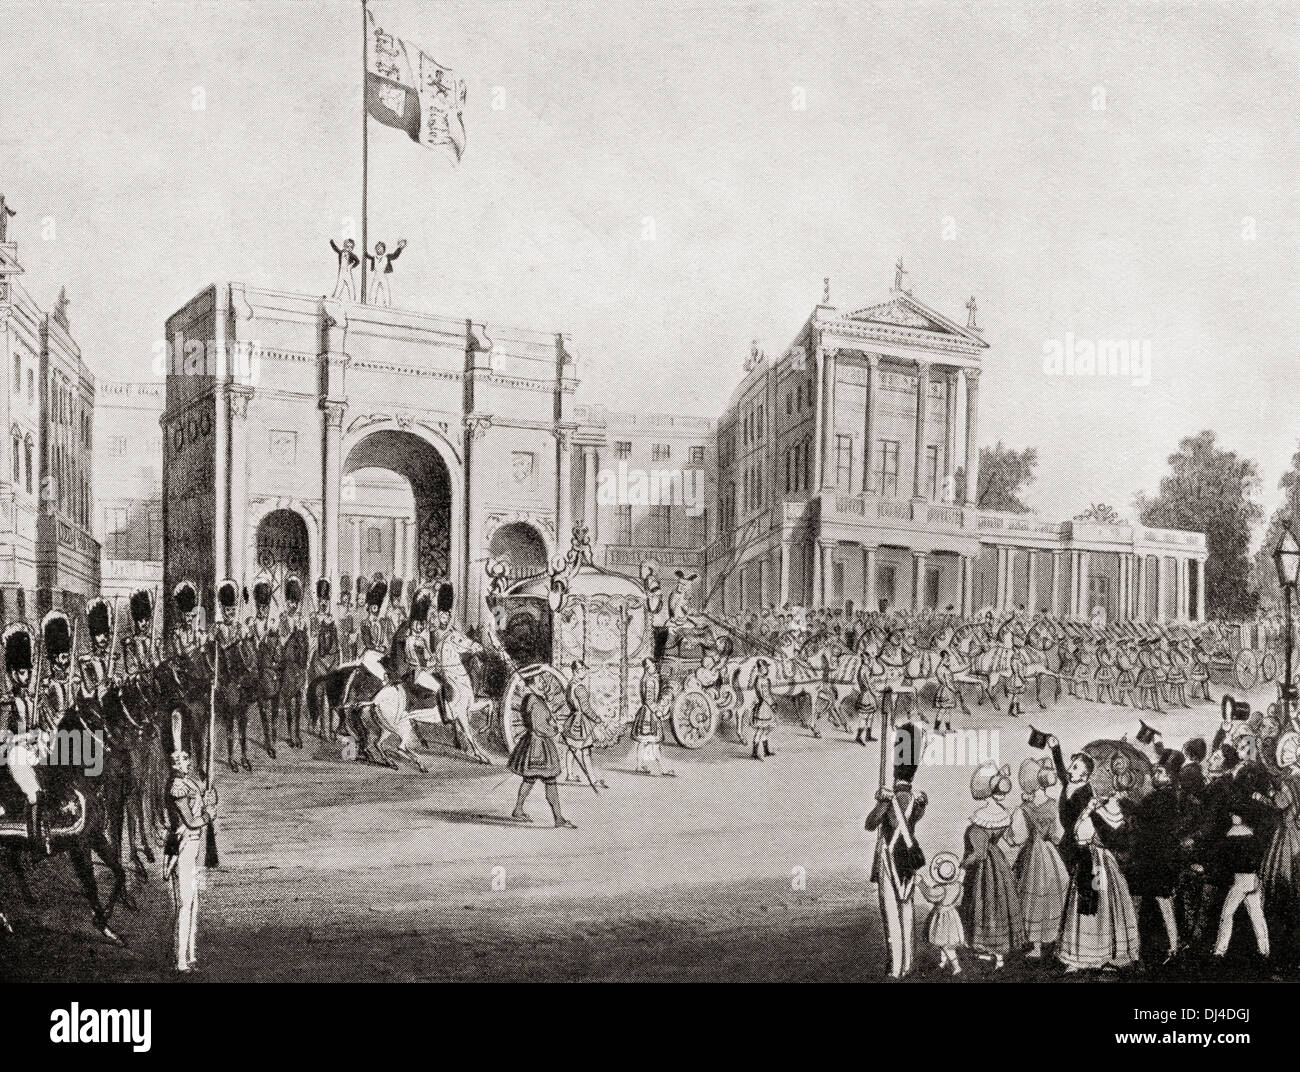 Coronation procession of Queen Victoria in 1838, leaving Buckingham Palace  through the Marble Arch.